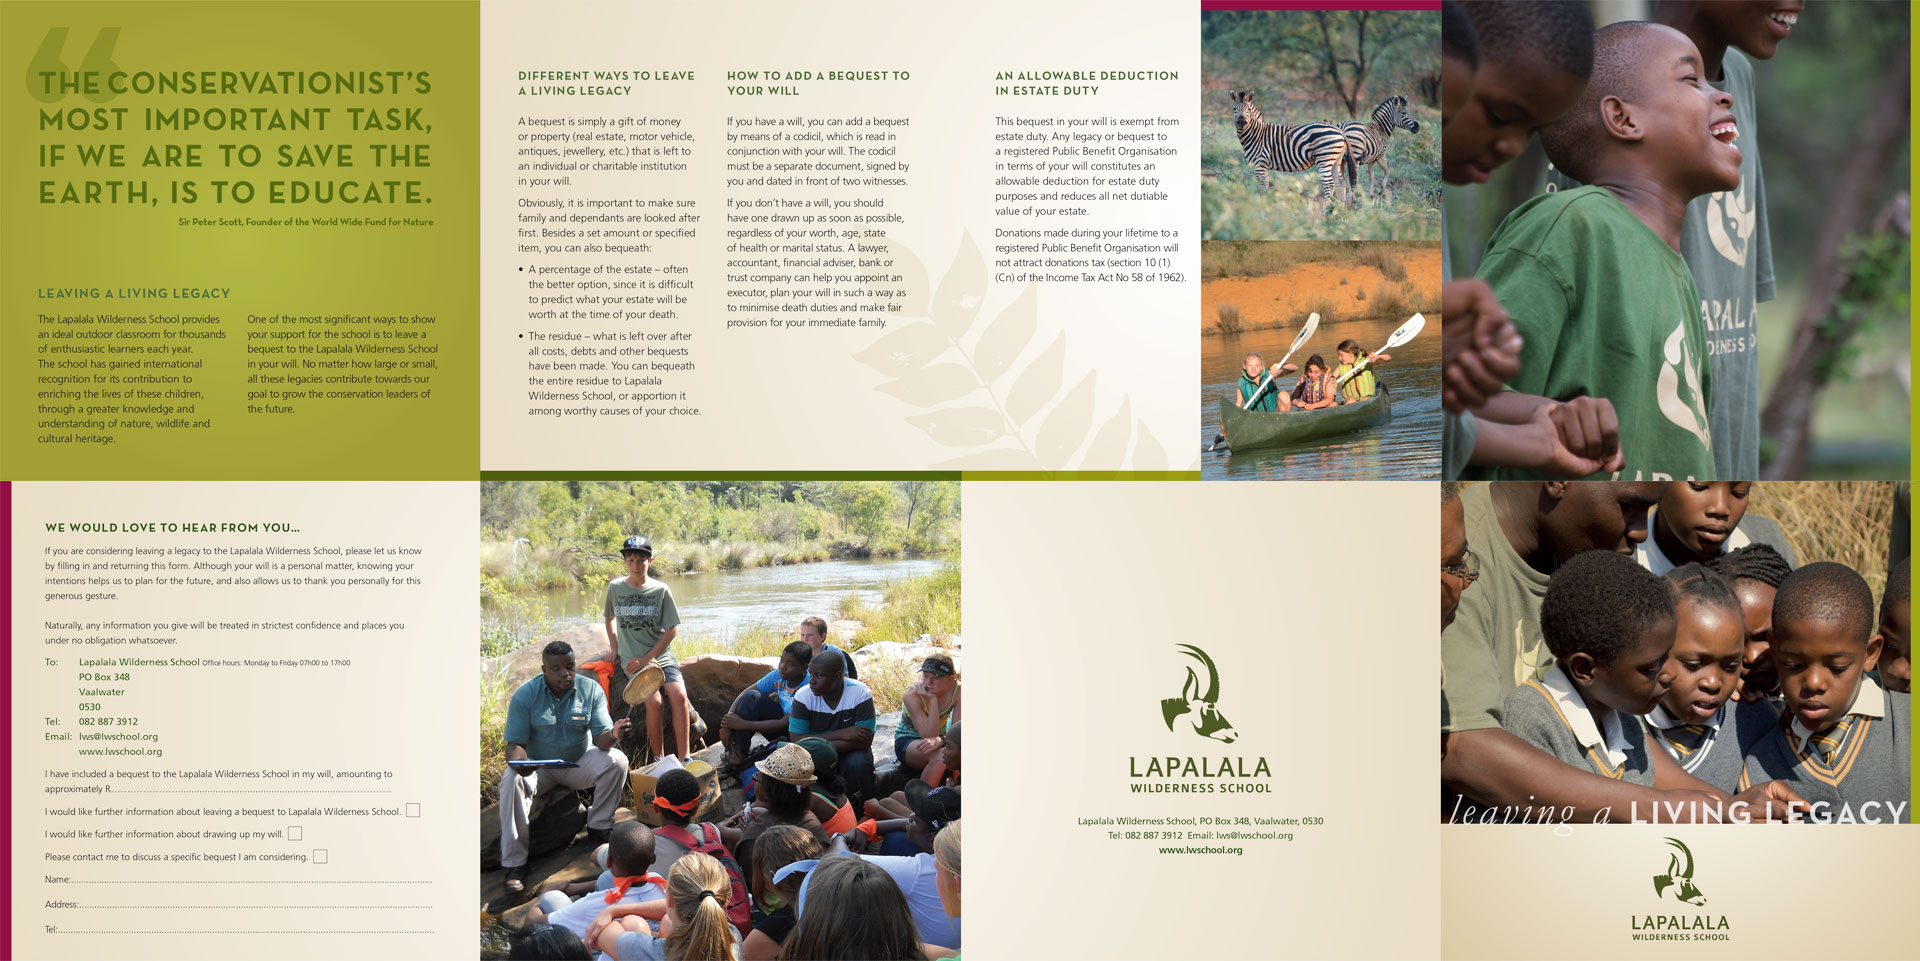 Lapalala Wilderness School History